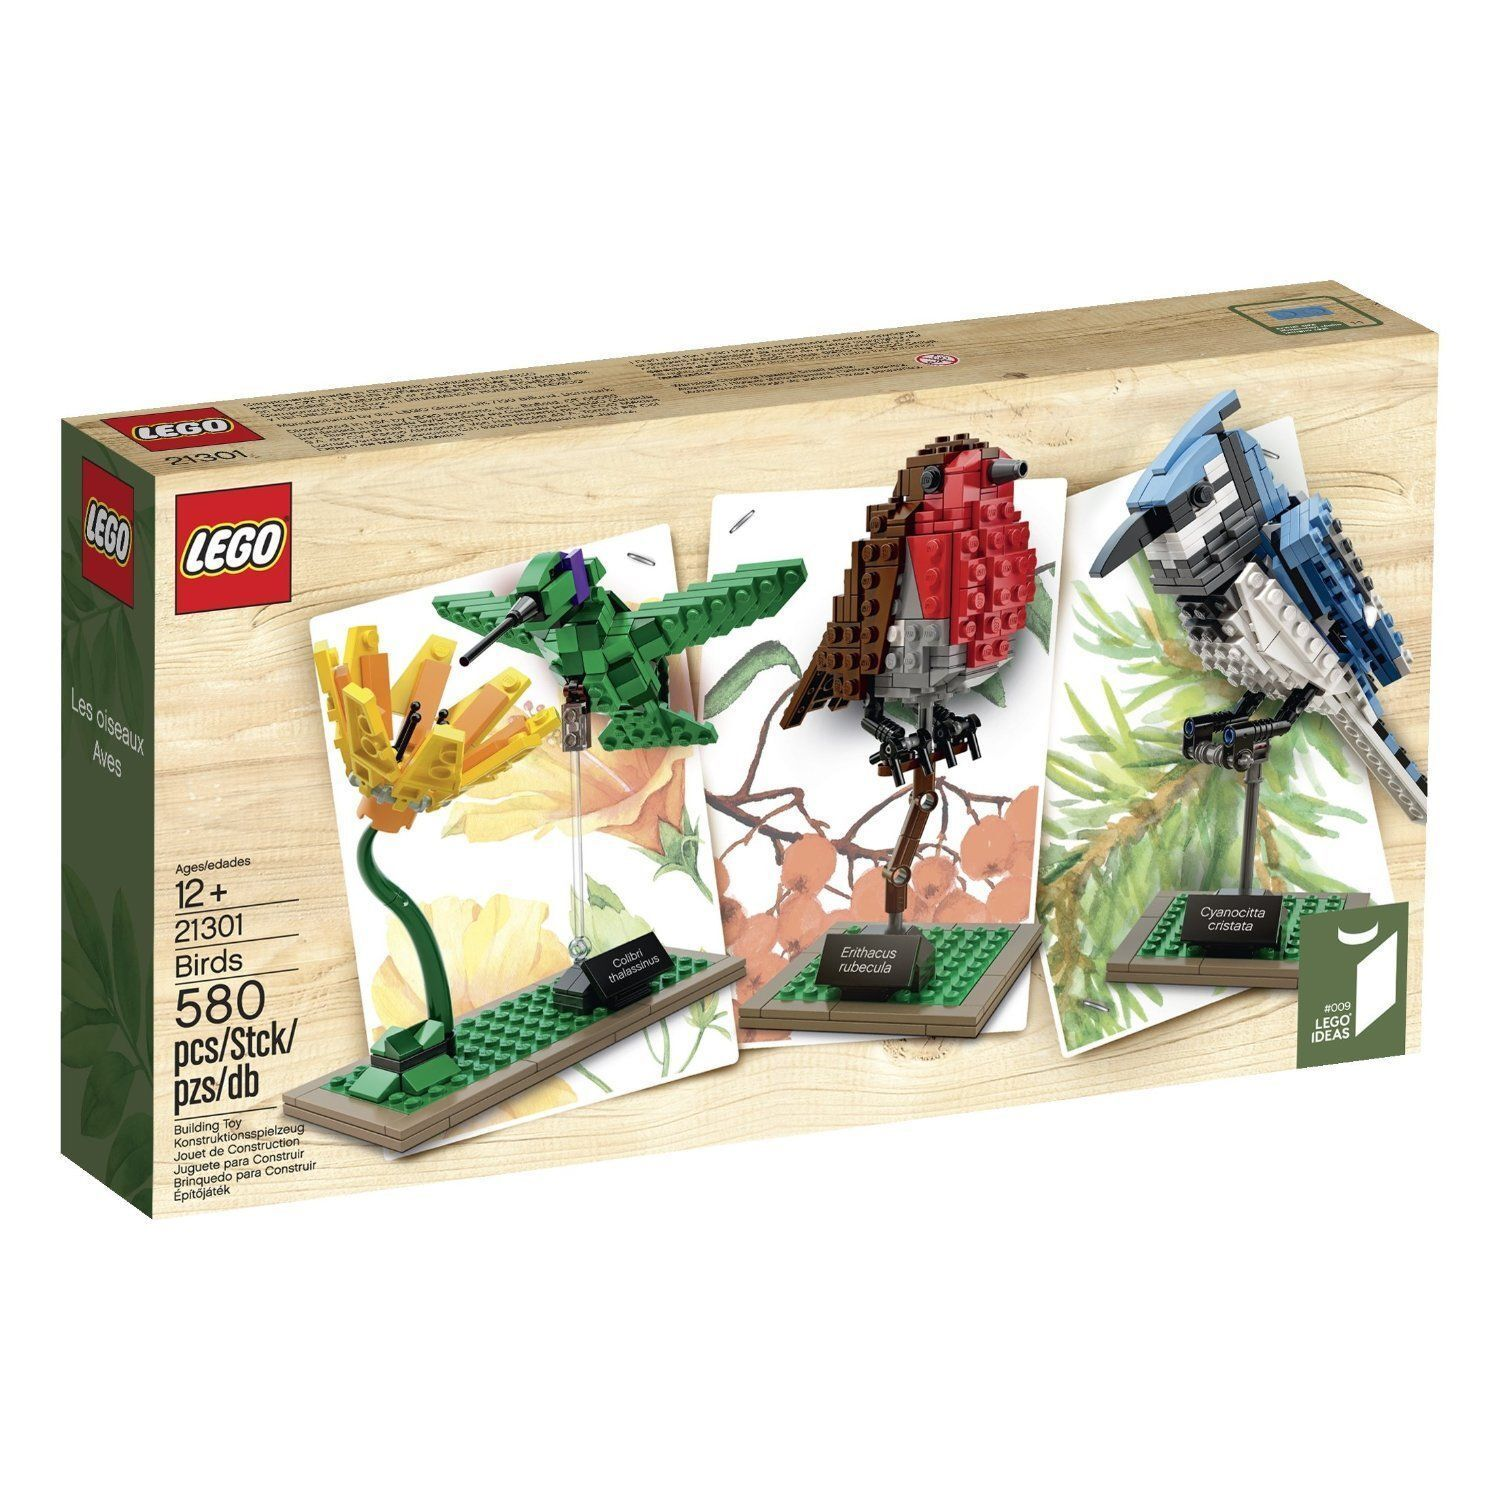 JANUARY 2015 LEGO CUUSOO / IDEAS 21301 BIRDS *NIB, ON HAND,